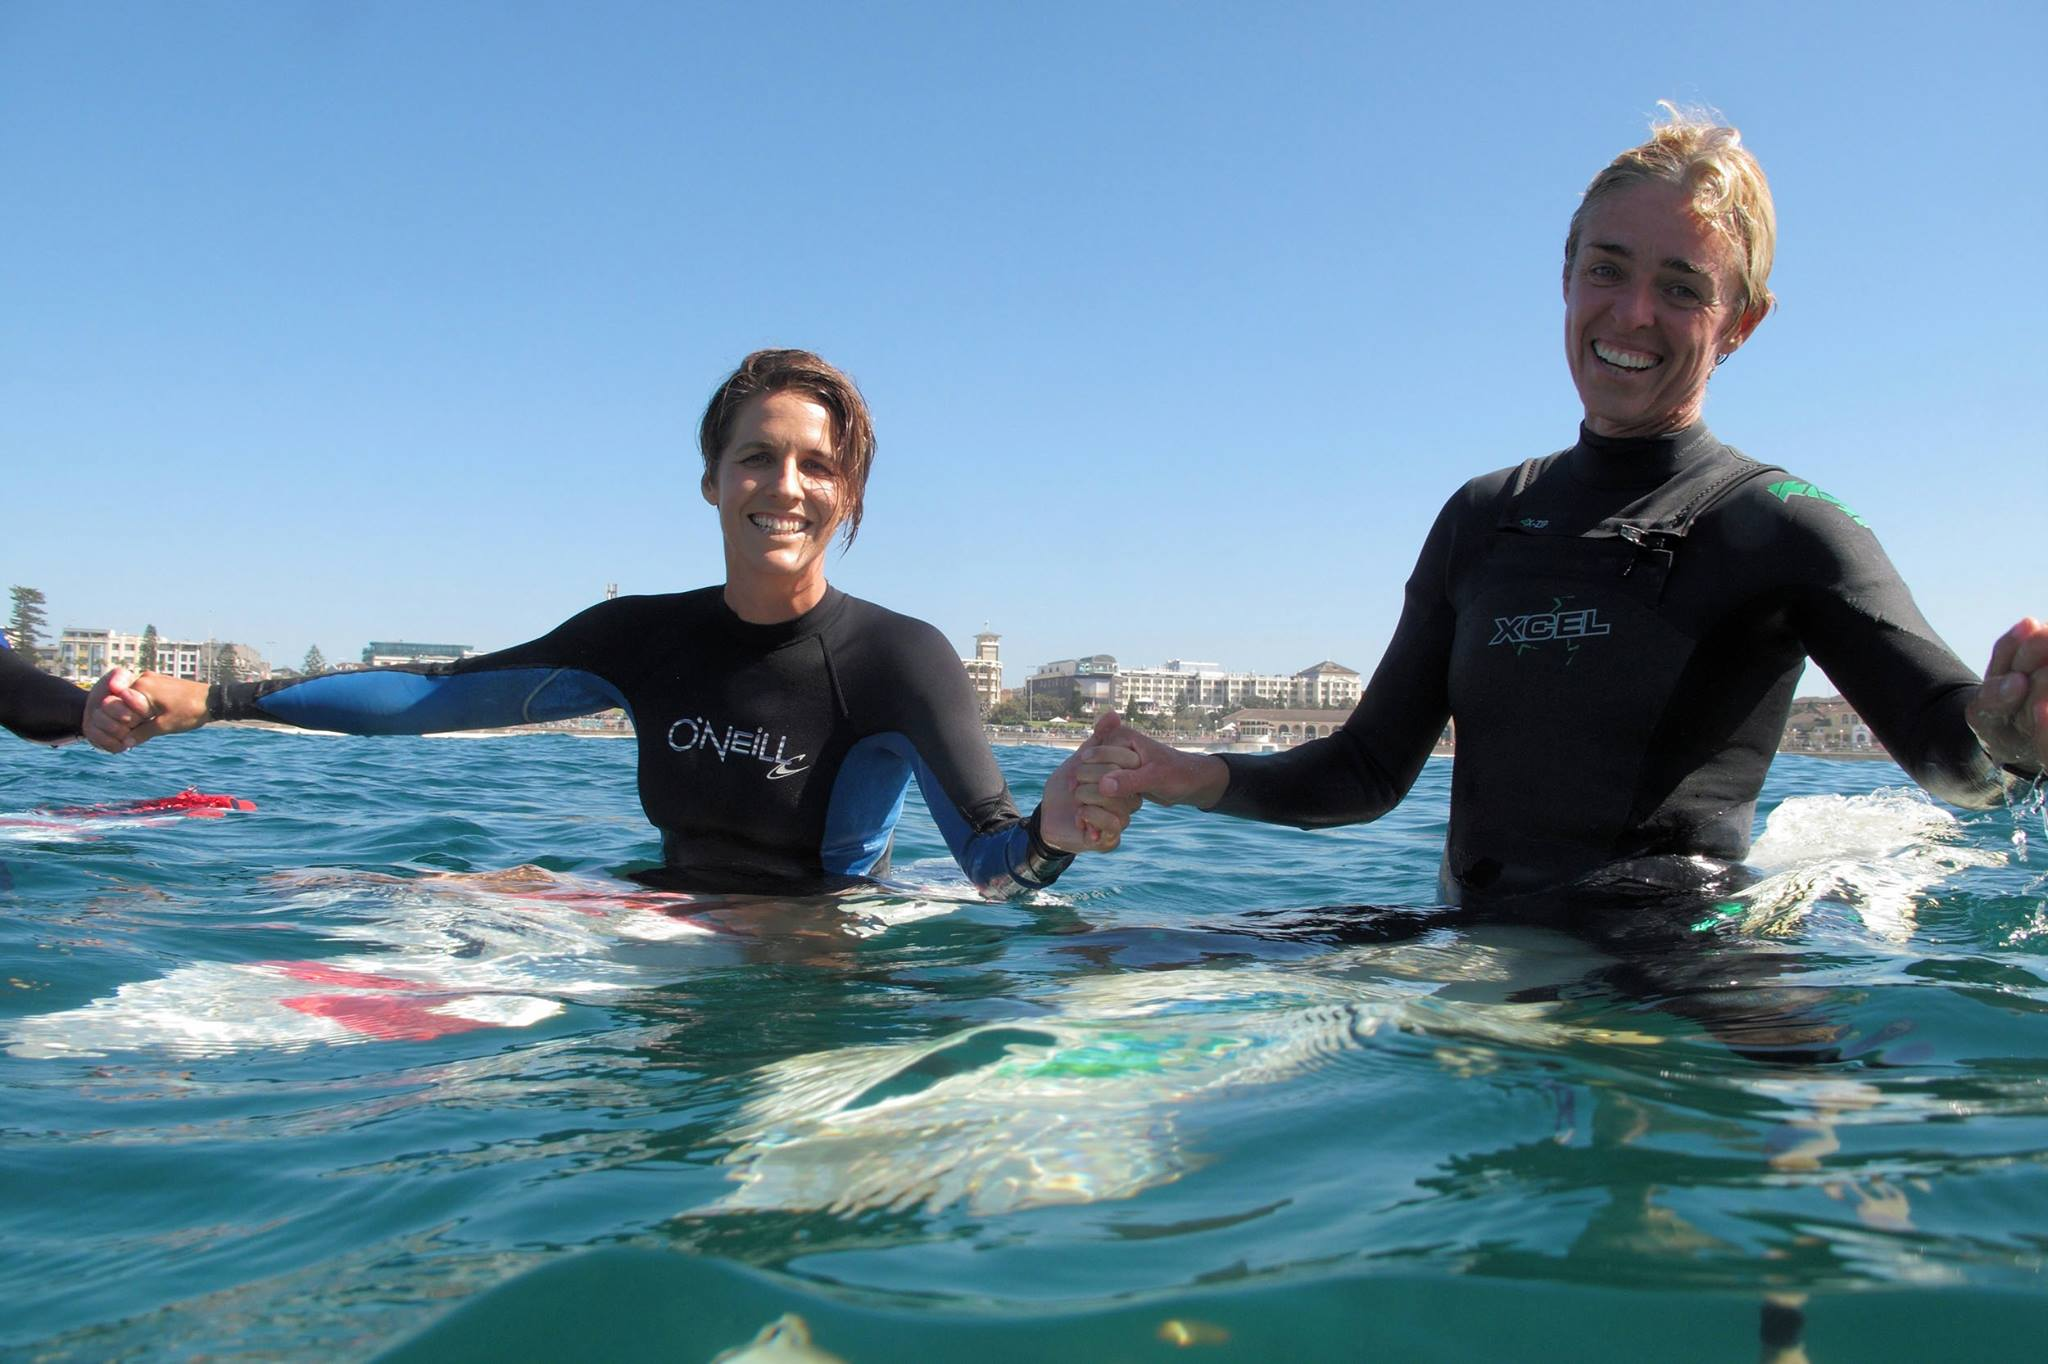 bondi girls Looking to improve your surfing or just hangout with women who surf join bondi's friendliest girls/ladies surf groupour group is made-up of all abilities from the wanna-be whitewash warrior to advan.